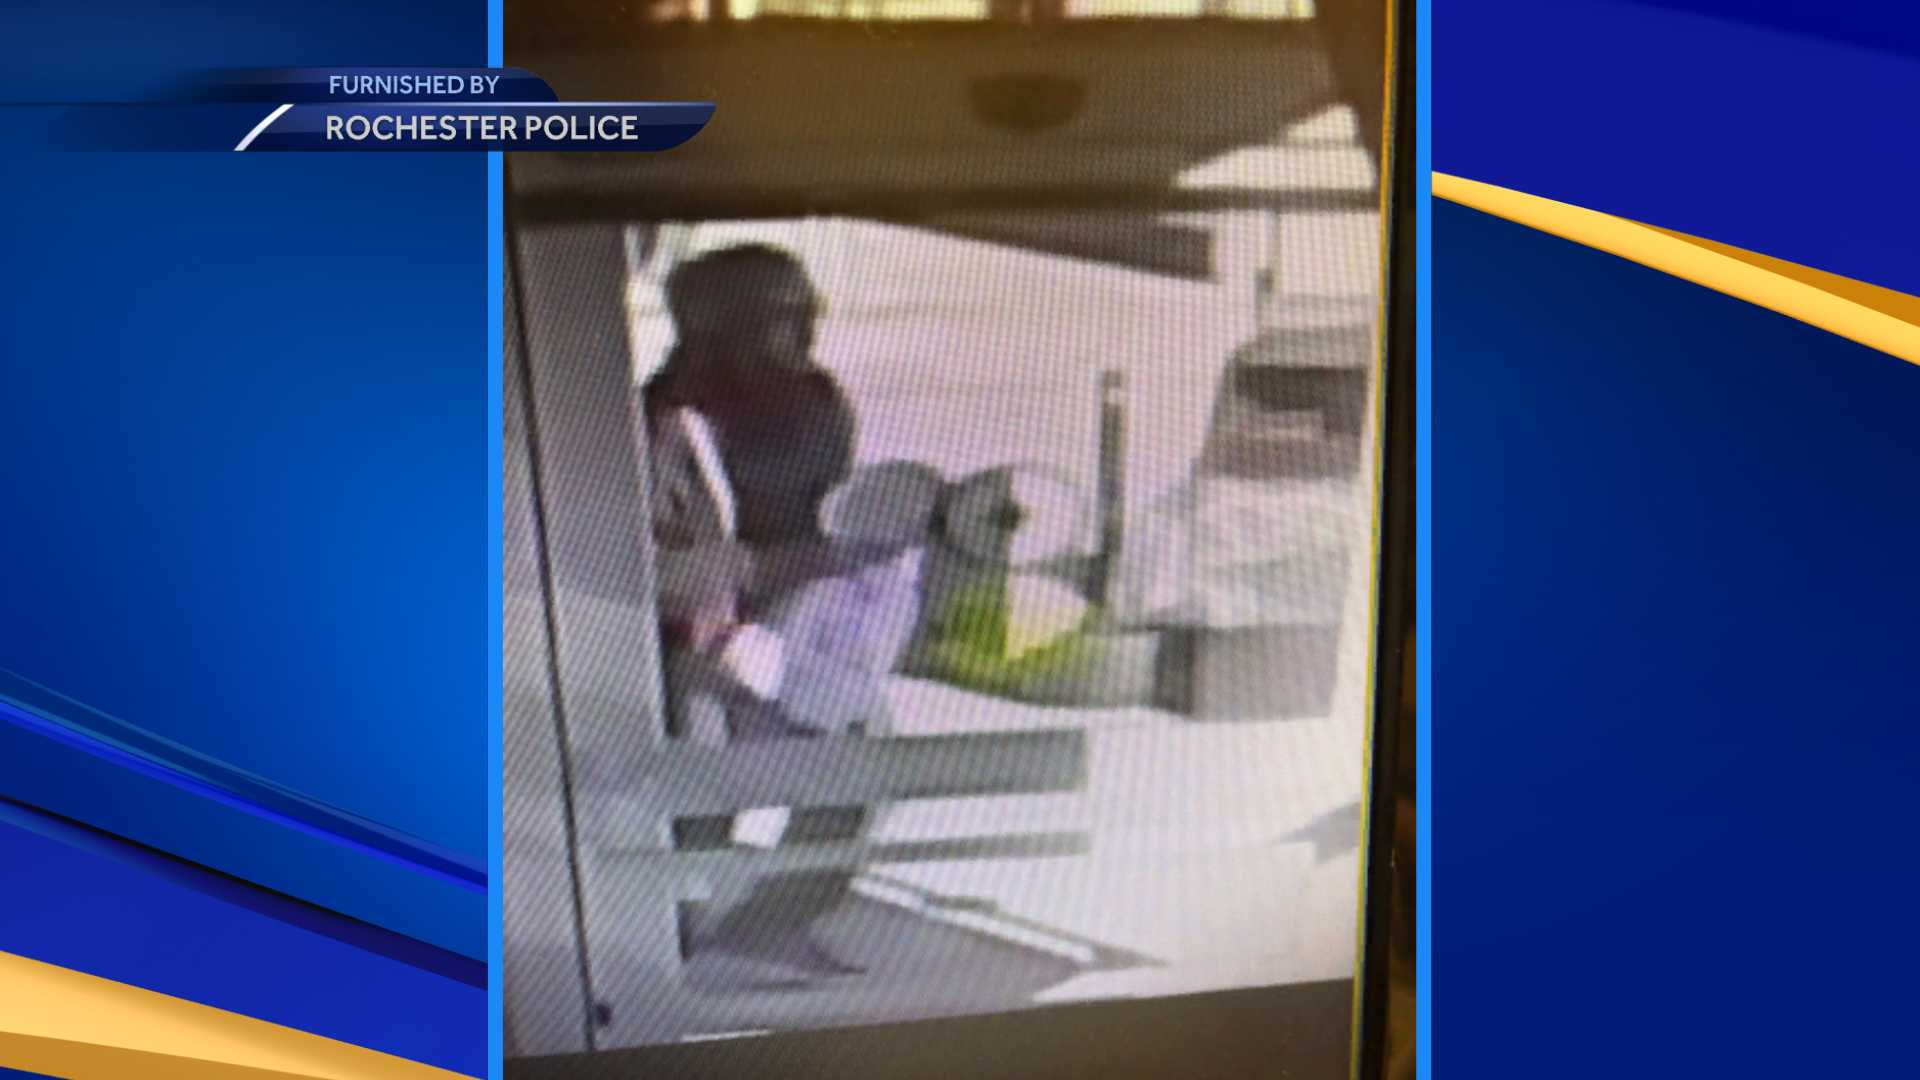 Rochester police looking for man who attempted to steal purse